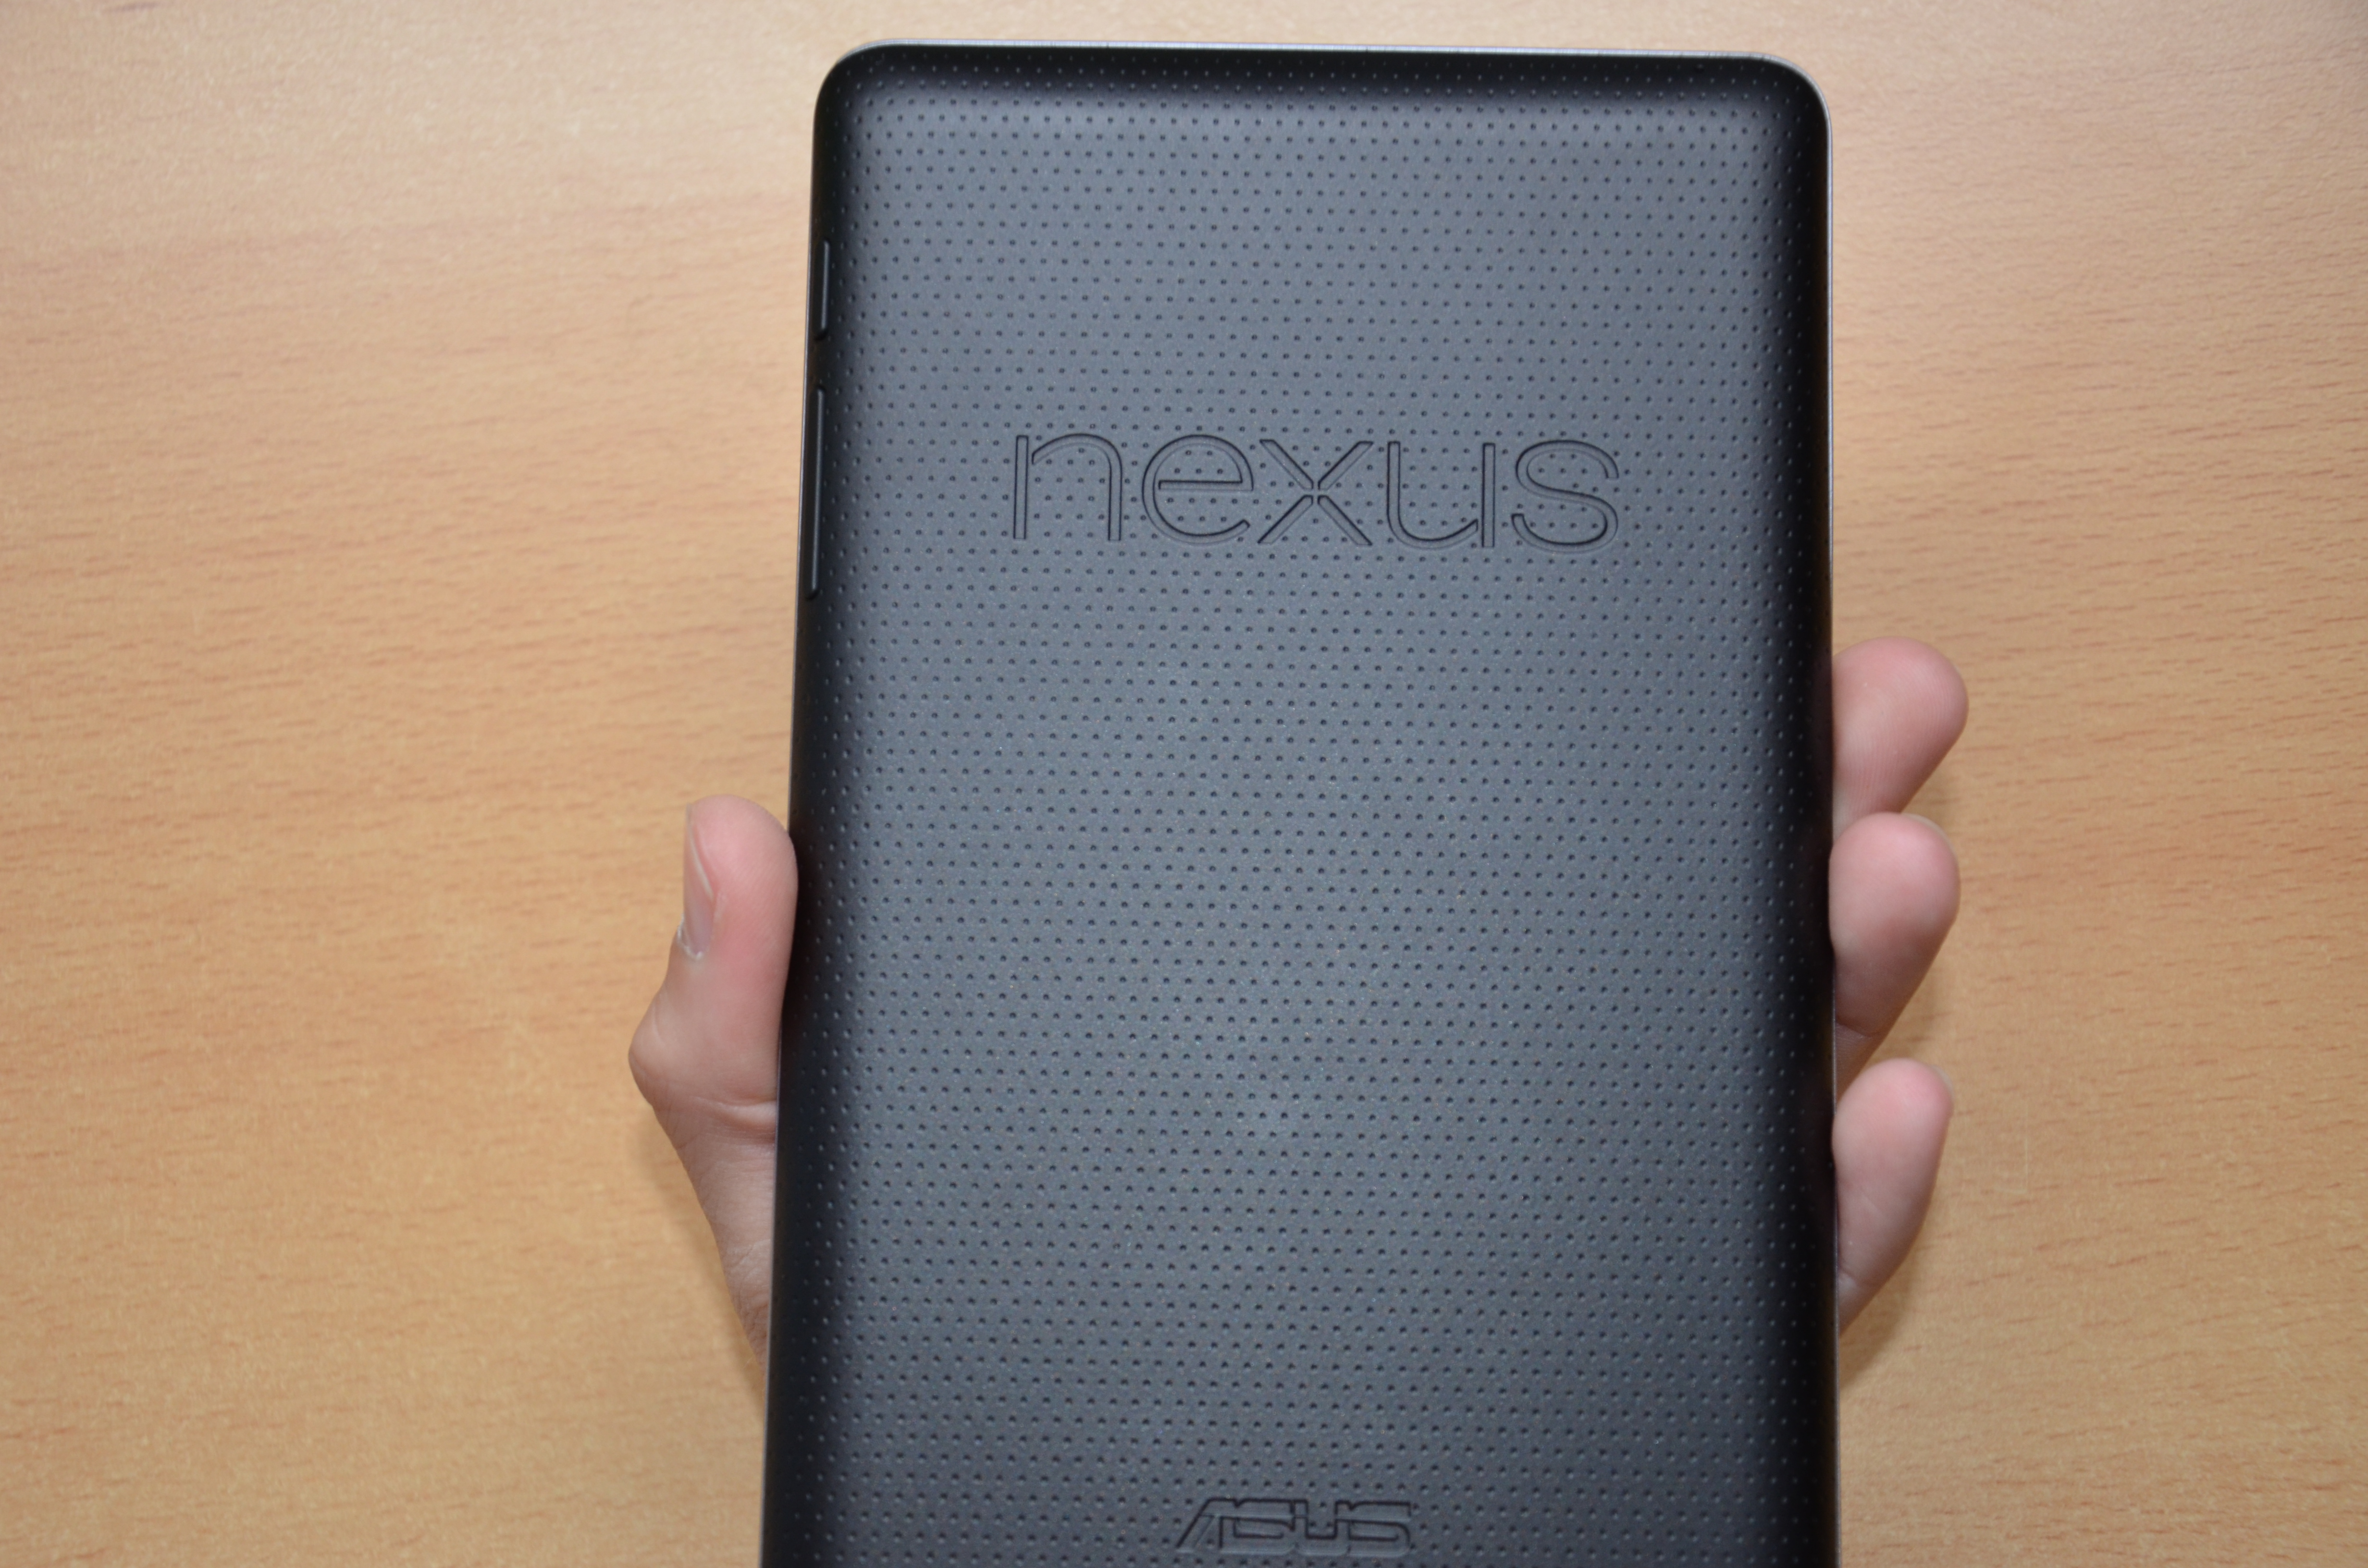 File:Google Nexus 7 Back.jpg - Wikimedia Commons